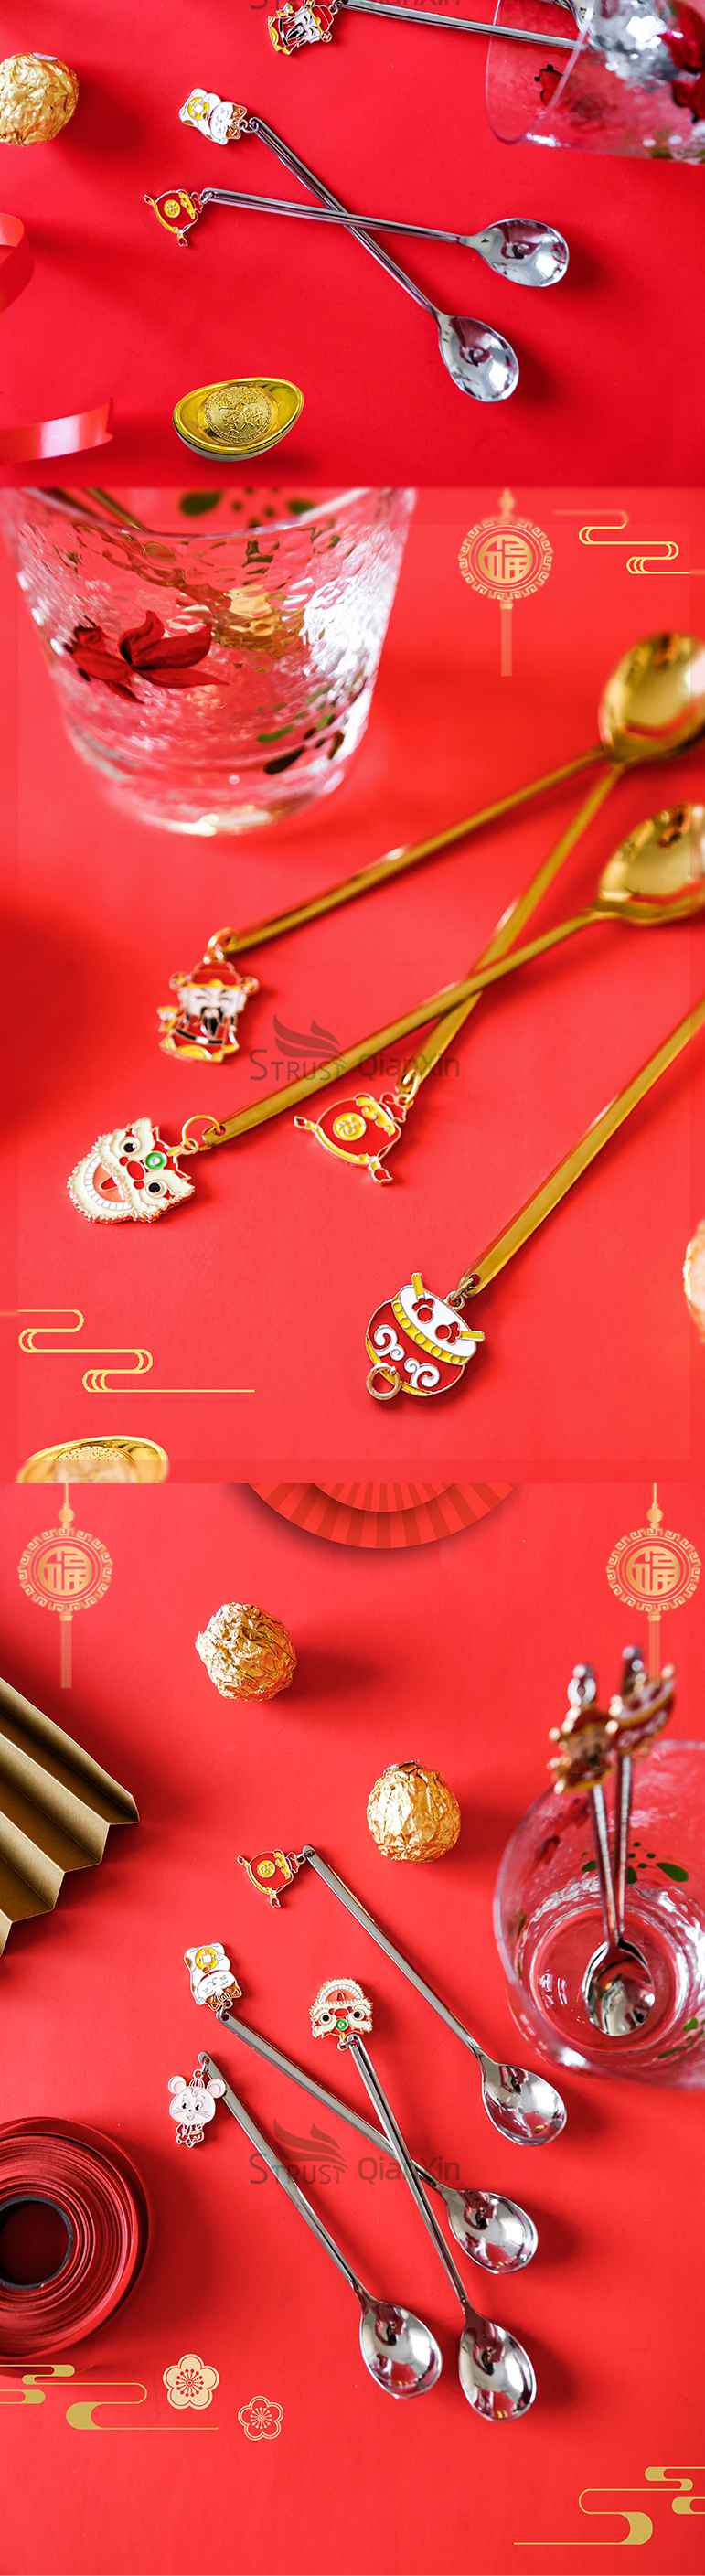 Chinese new year gift box gold coffee spoon gifts teaspoon set for new year party